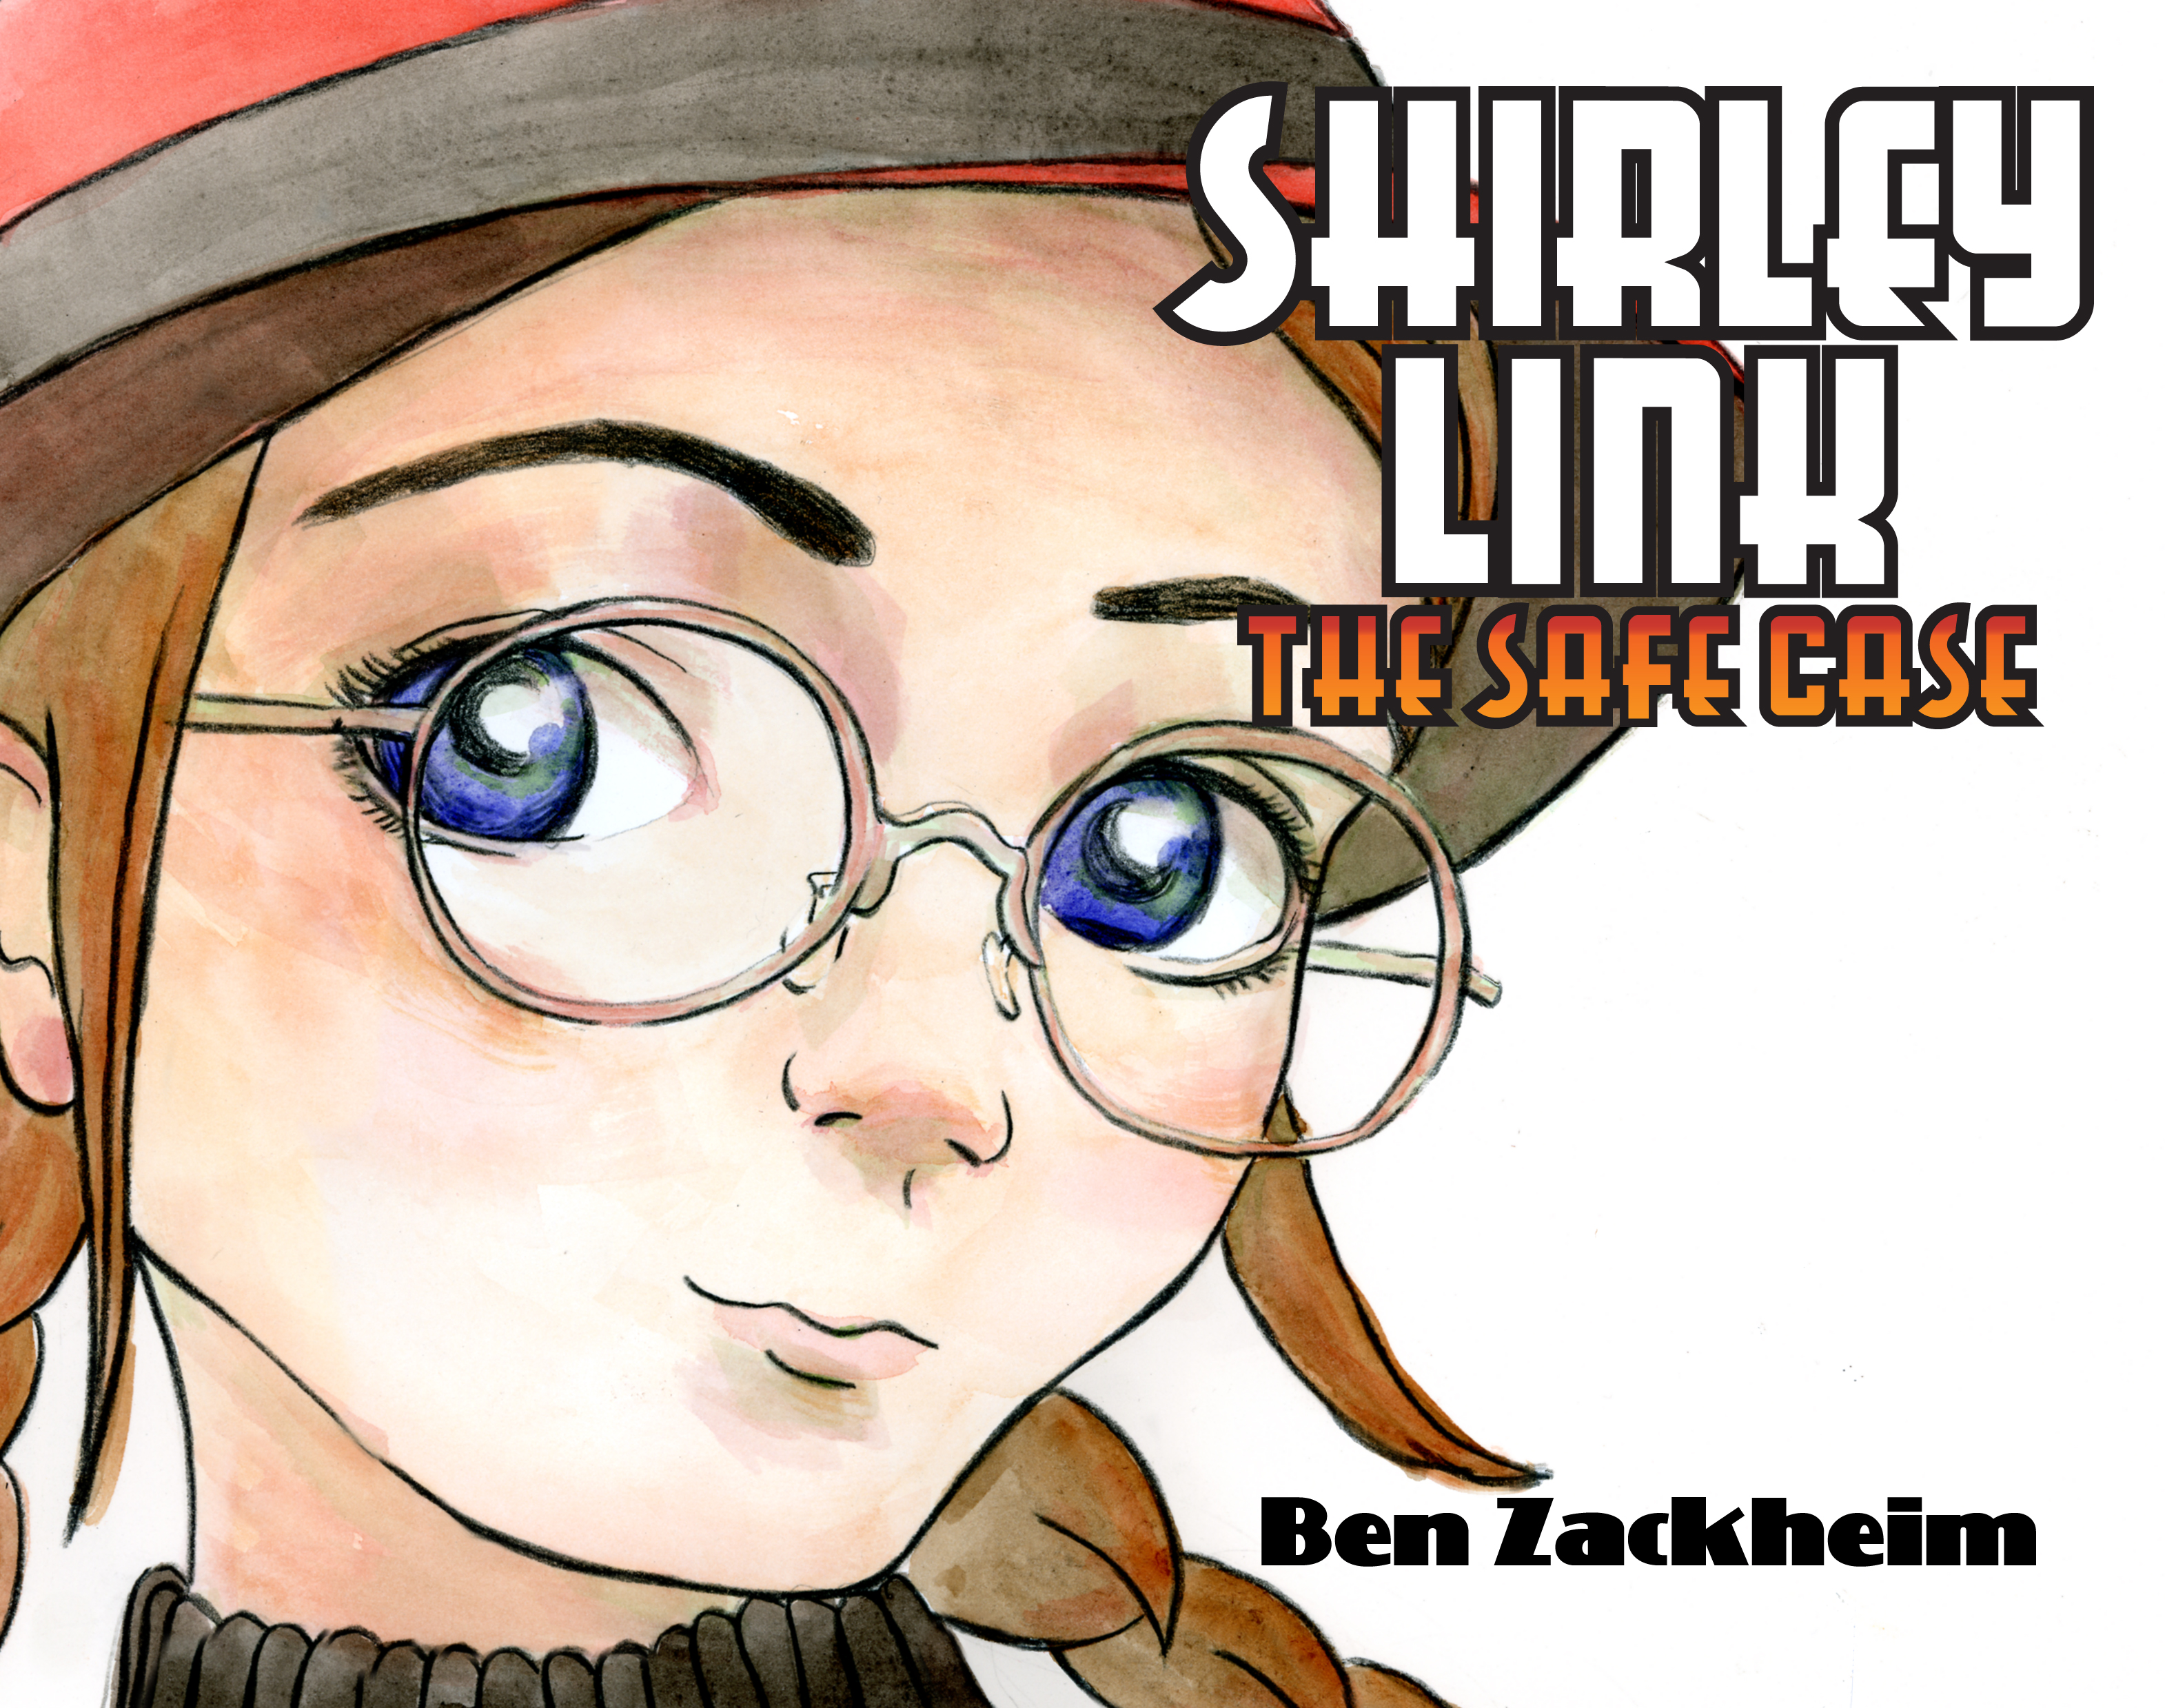 shirley_link_full_cover_promotional_image